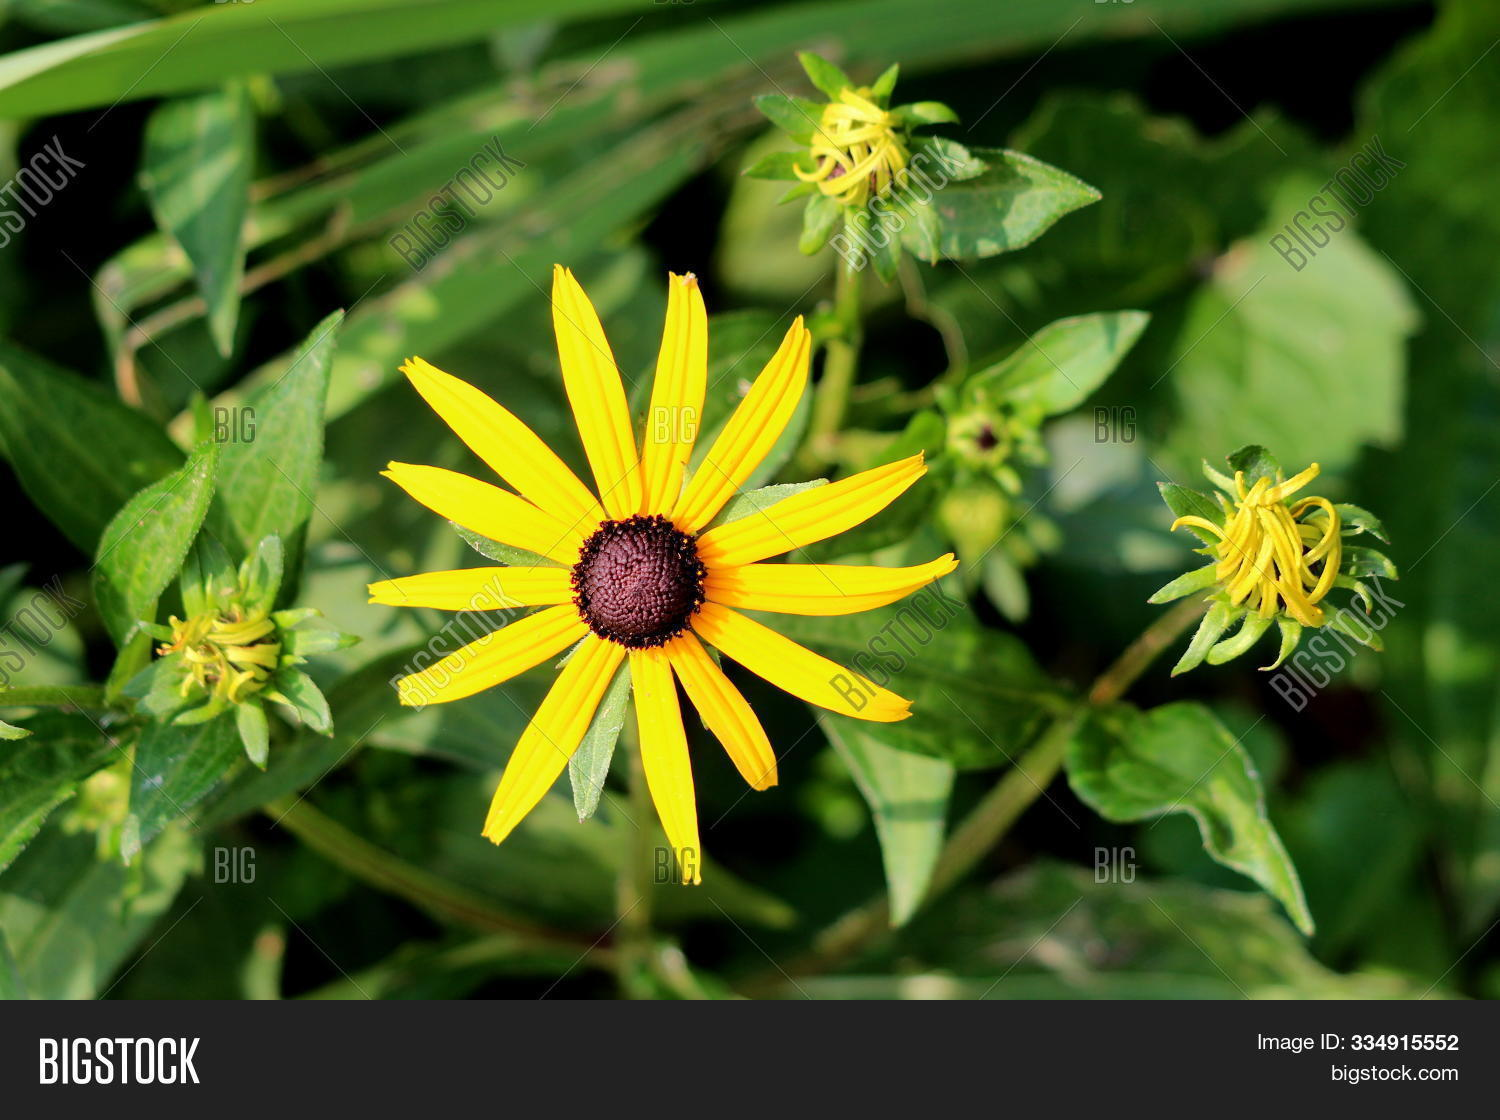 Black Eyed Susan Image Photo Free Trial Bigstock Deviantart is the world's largest online social community for artists and art enthusiasts, allowing people to connect through the creation and sharing of art. black eyed susan image photo free